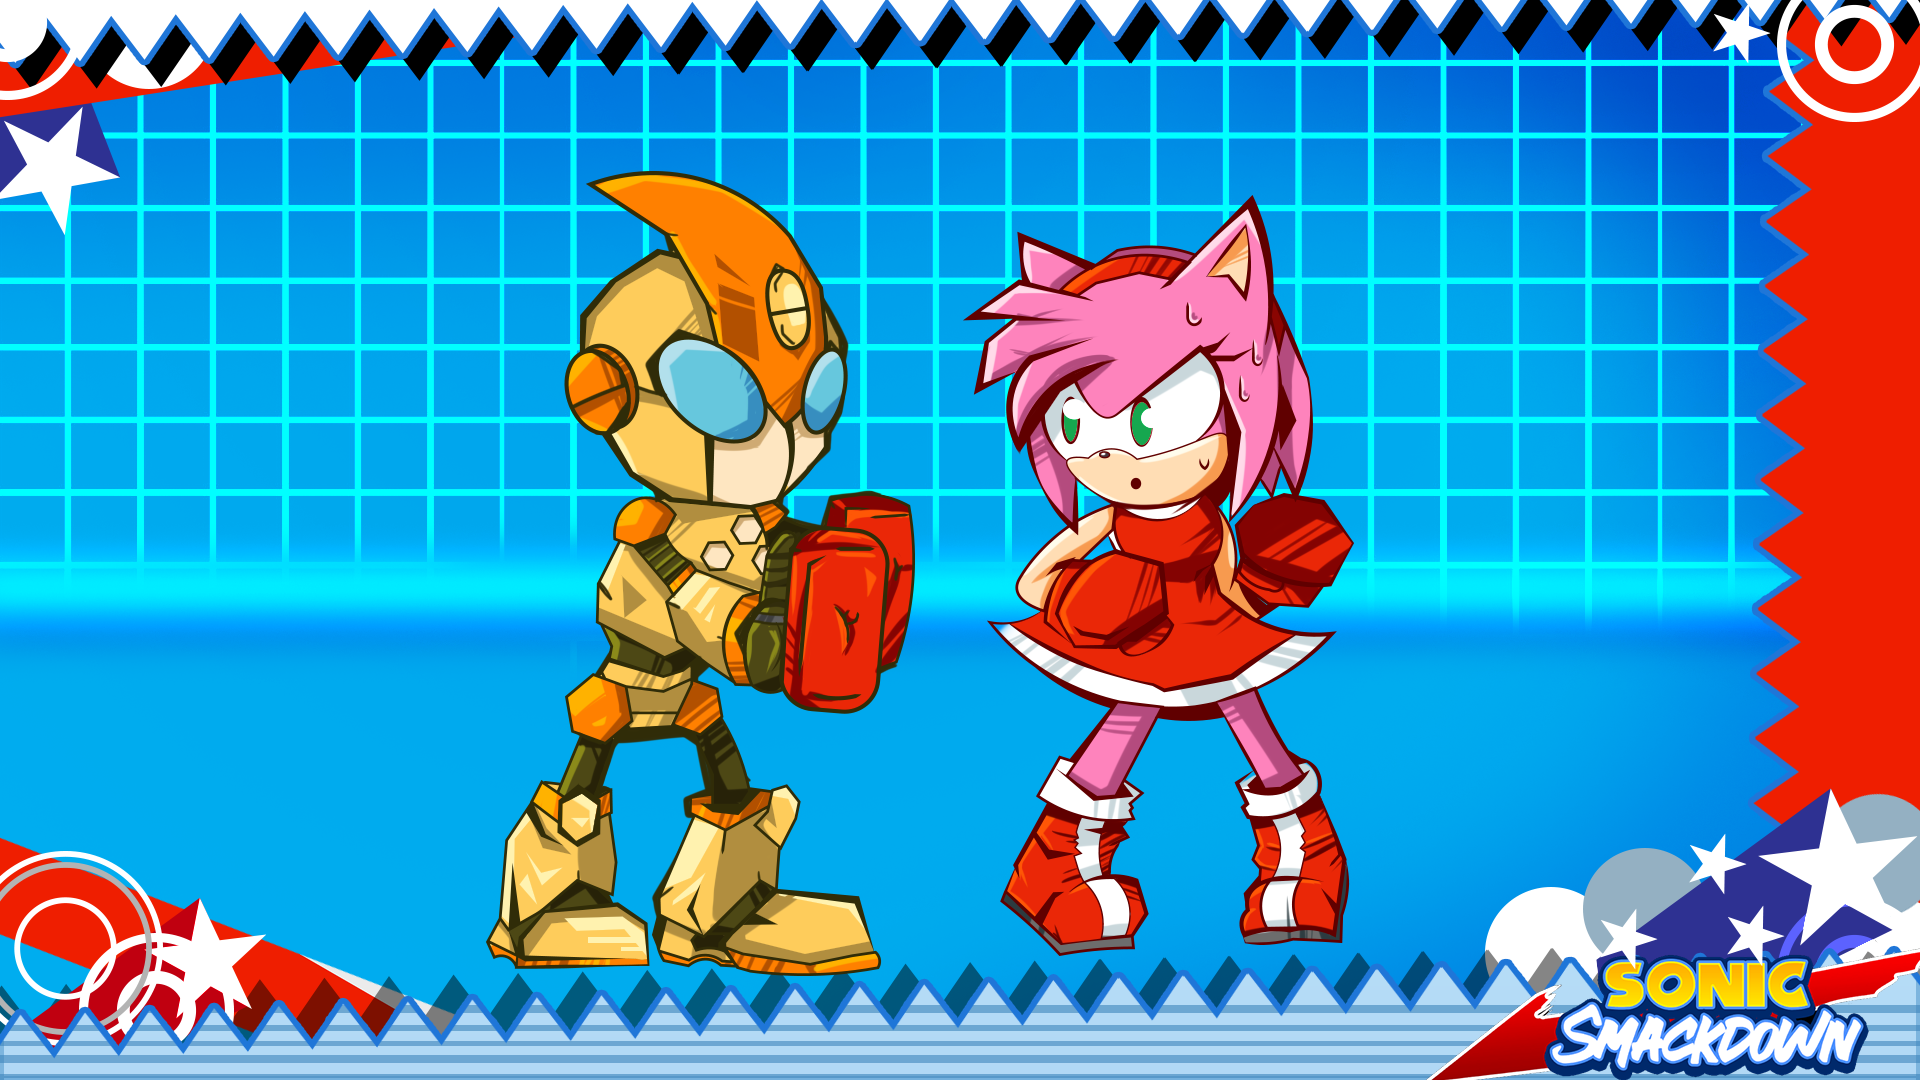 Training Day Sonic Smackdown By Parrishbroadnax On Deviantart We claim no copyright to any character or reference in the game. training day sonic smackdown by